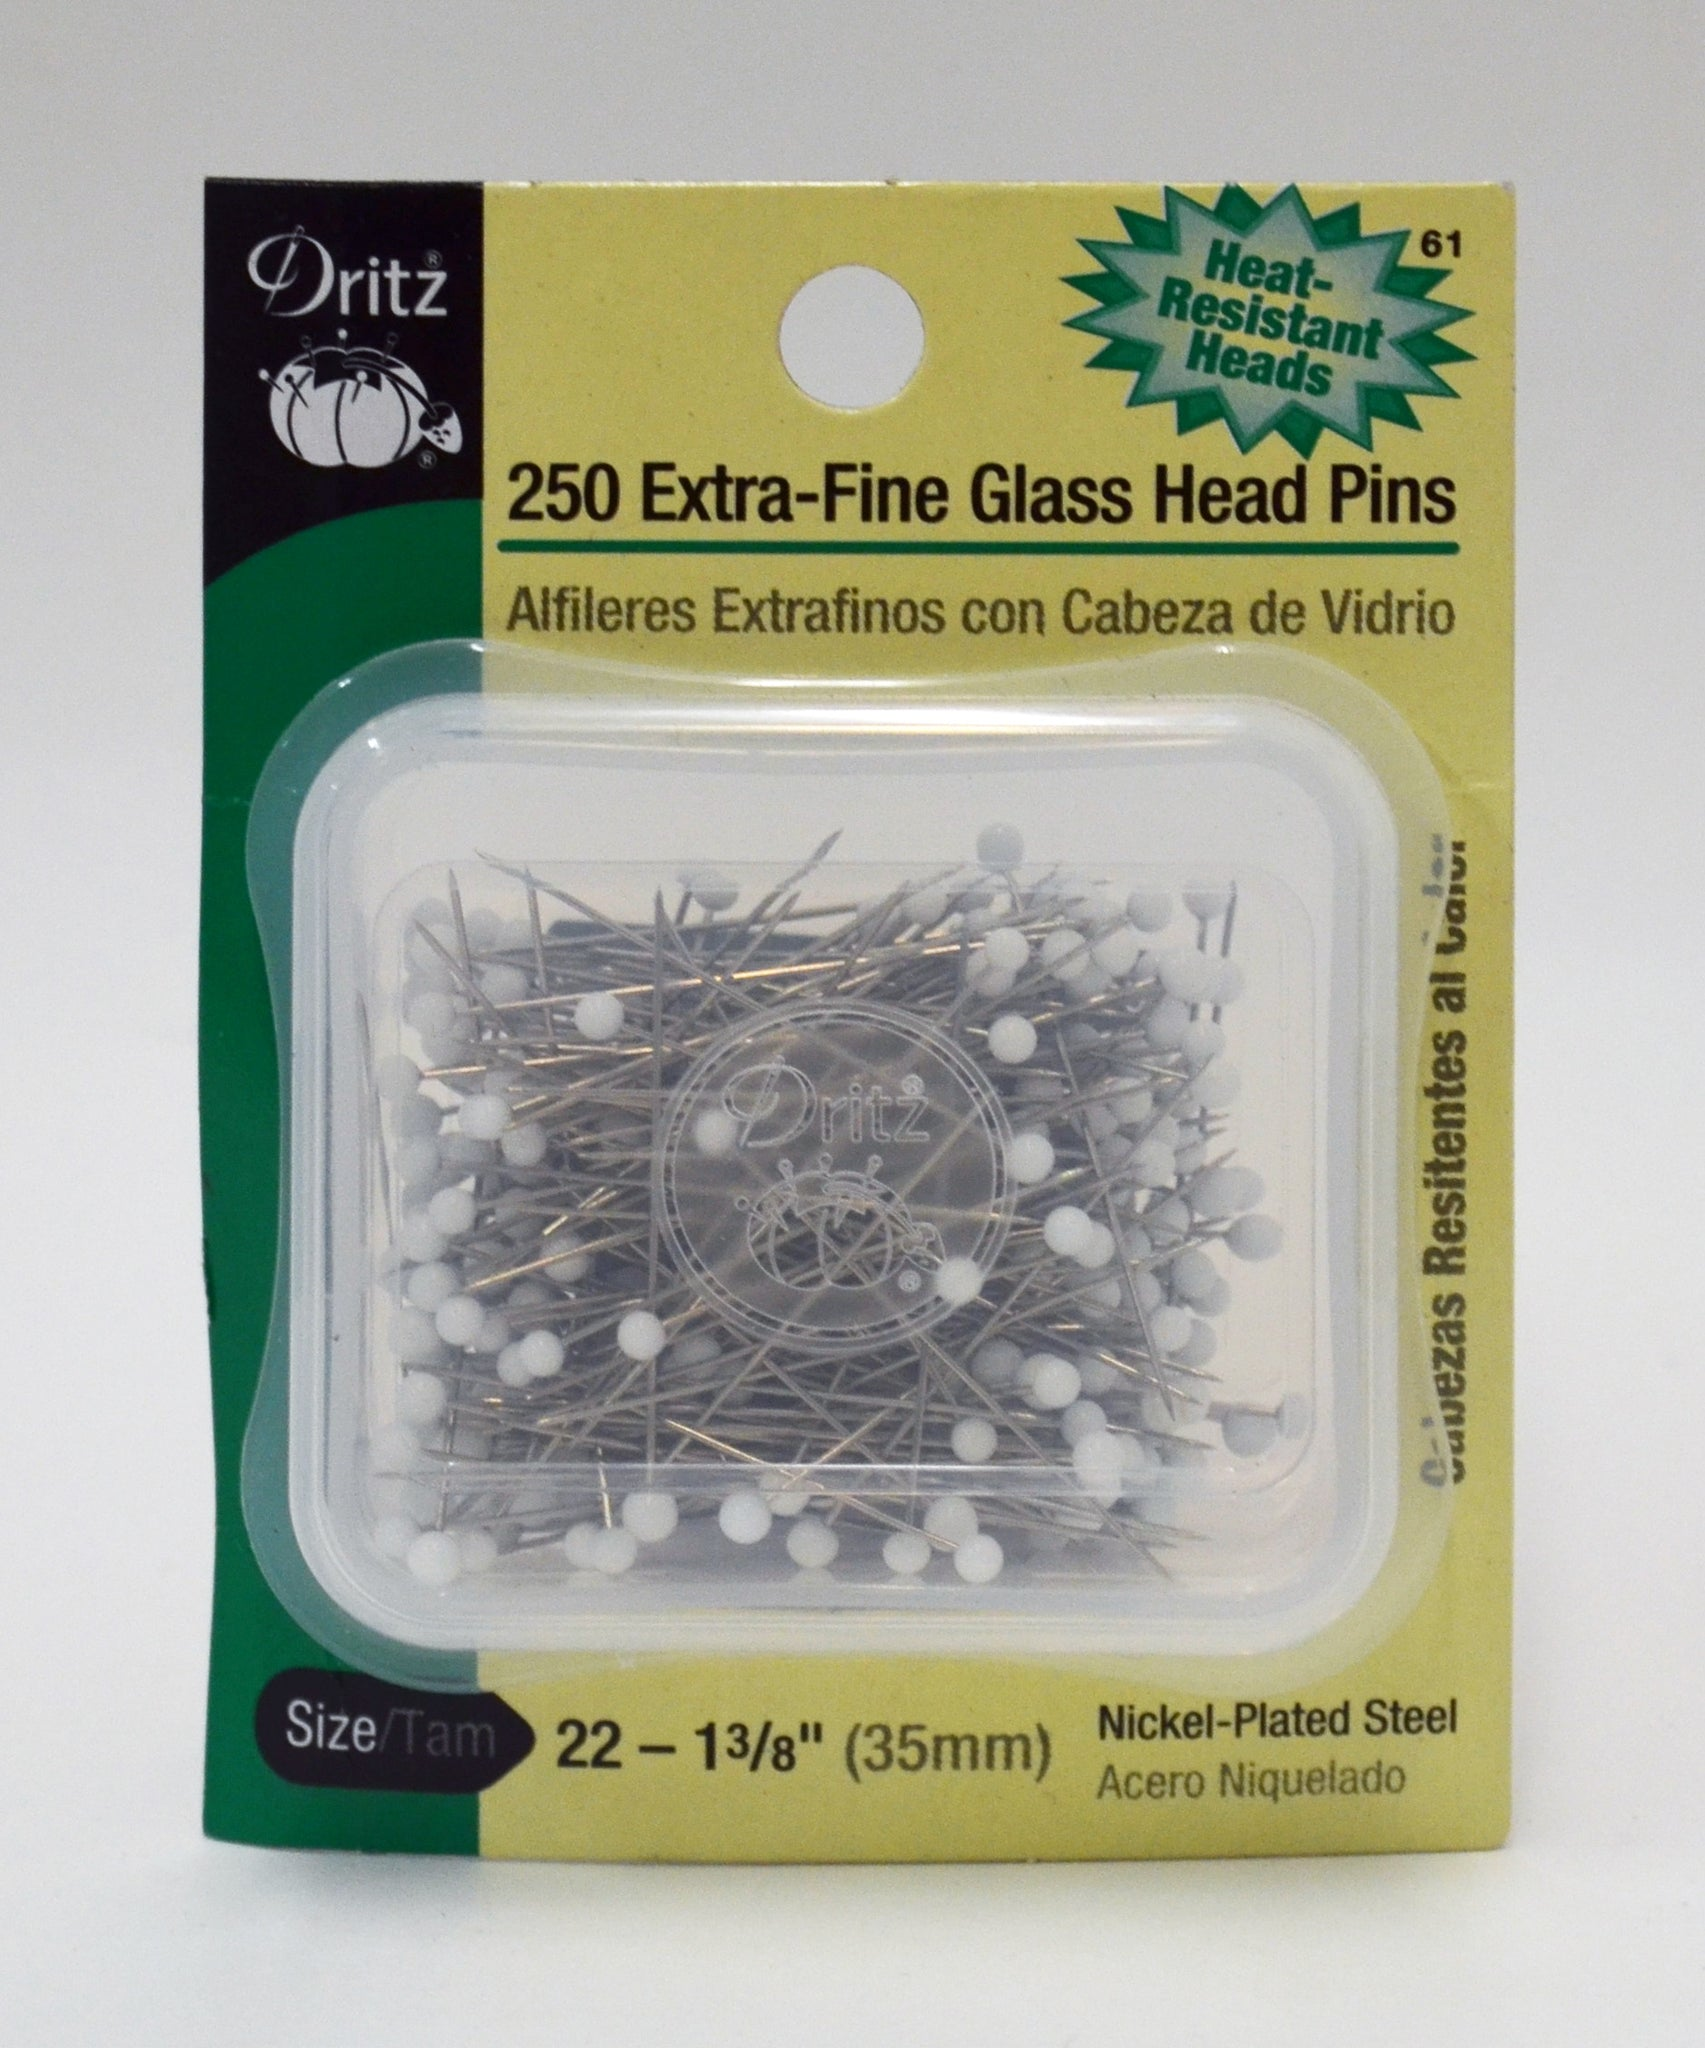 Extra-Fine Glass Head Pins - 250-pk